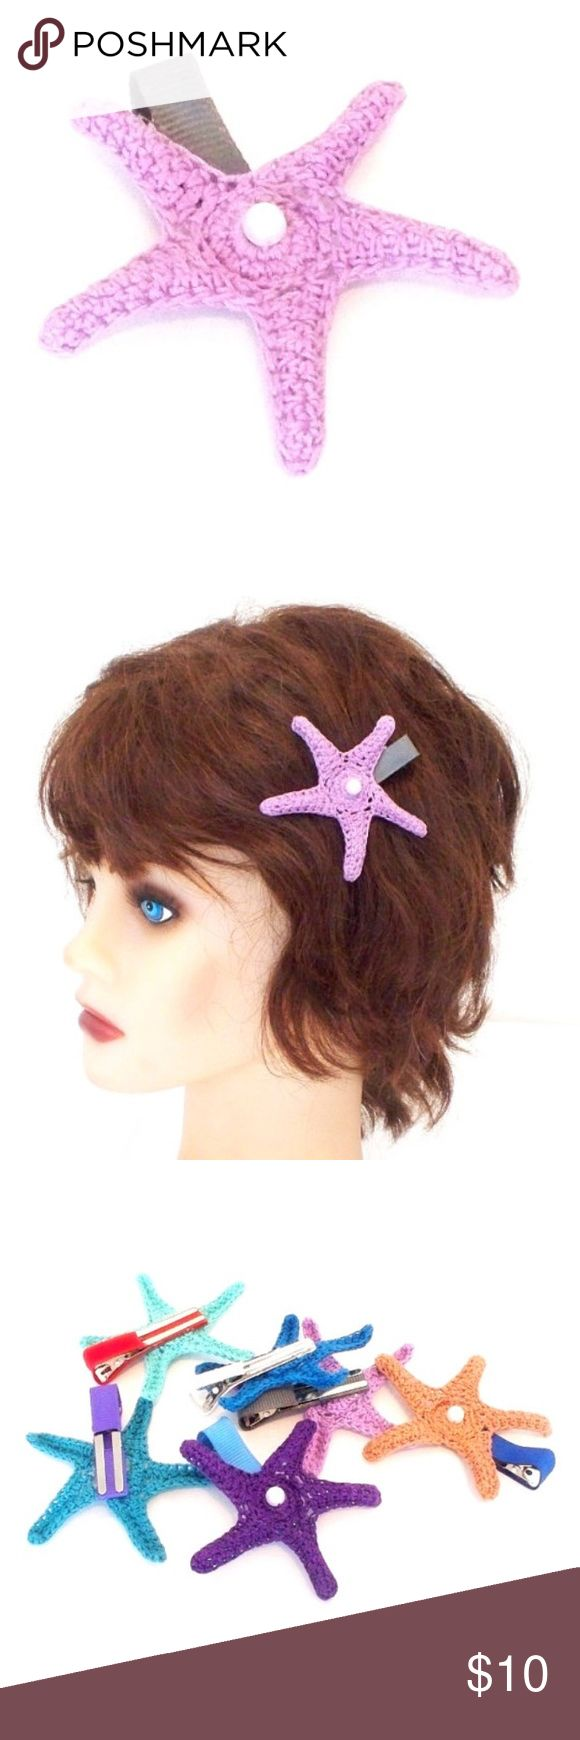 "Handmade Crochet Starfish Hair Clip Crochet Starfish Hair Clip in Lavender  Bright and colorful hair clip featuring a hand crocheted starfish on a gray 1.75"" (4.45 cm) alligator clip, topped off with a faux pearl  :) Accessories Hair Accessories"